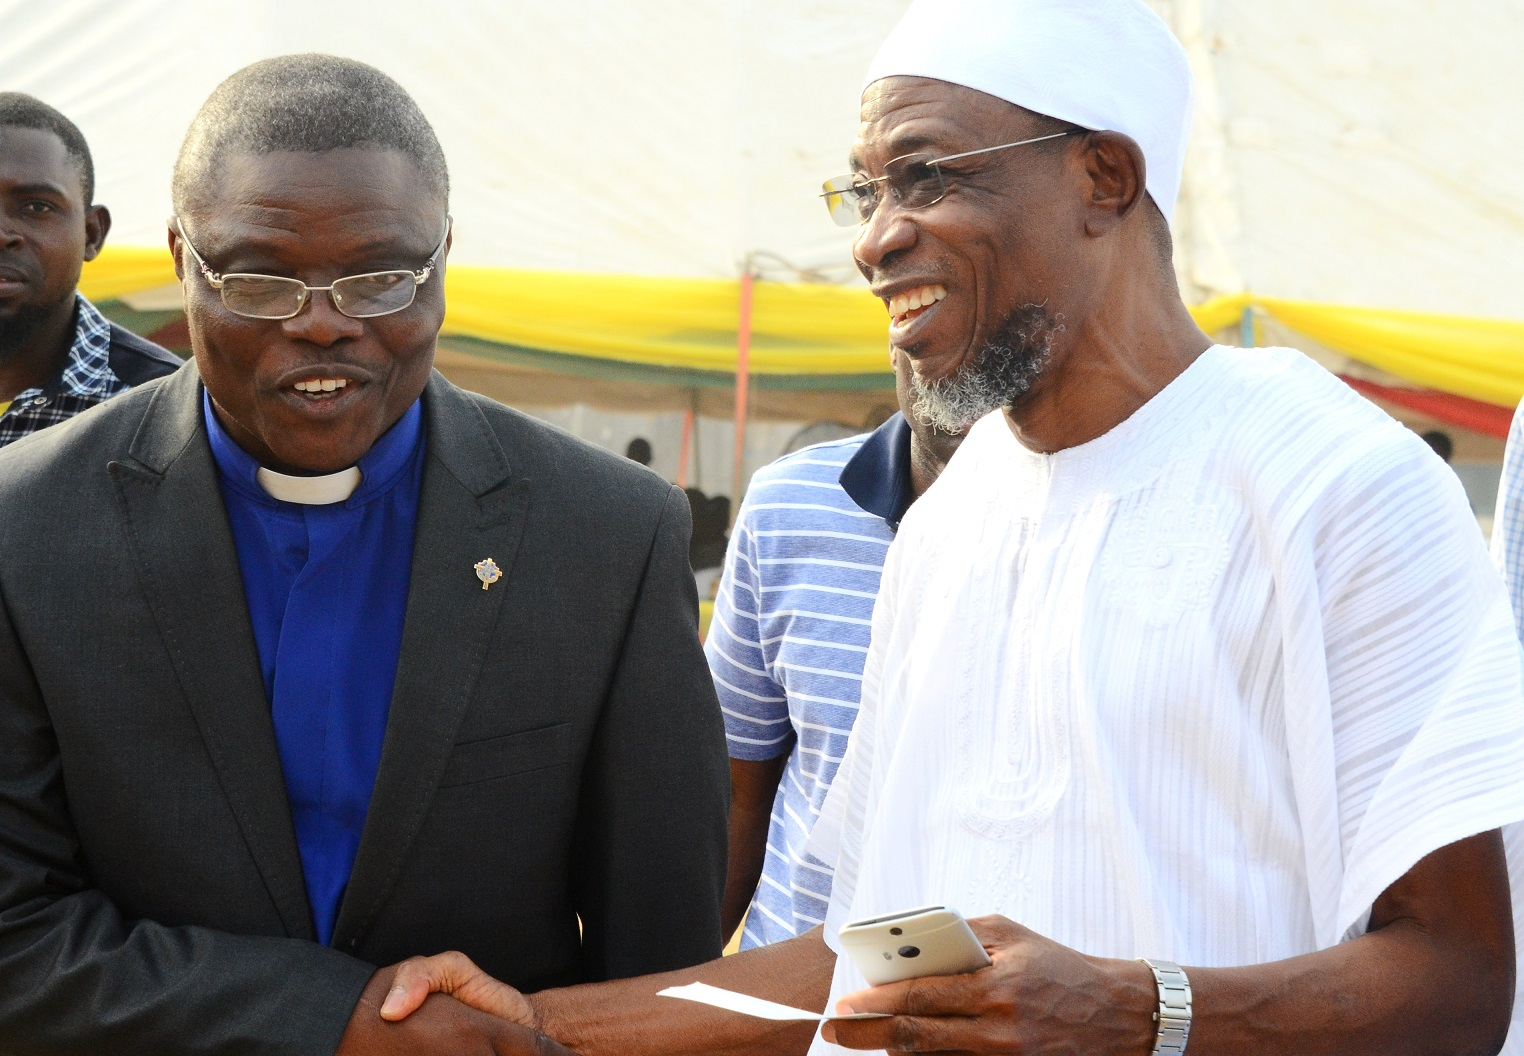 Governor State of Osun, Ogbeni Rauf Aregbesola, exchanging greetings with the State Chairman, Christian Association of Nigeria (CAN), Rev.(Dr), Elisha Ogundiya, during the 2015  Christmas Carol by the State Government of in Conjunction with State Christian Association of Nigeria (CAN), at Government House Osogbo, on Sunday 27/12/2015.